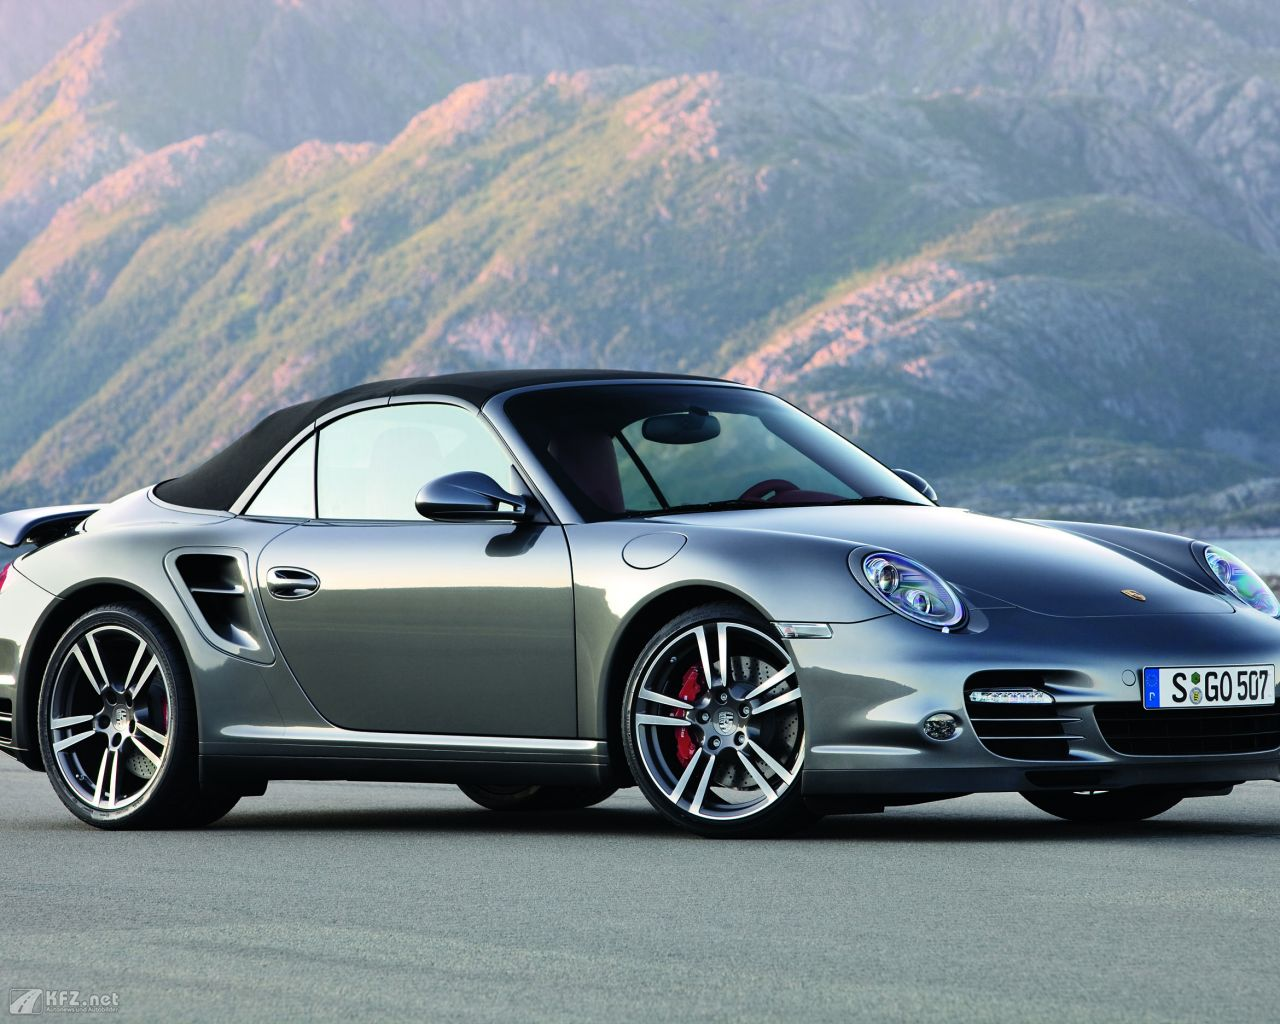 porsche-911-turbo-coupe-1280x1024-10